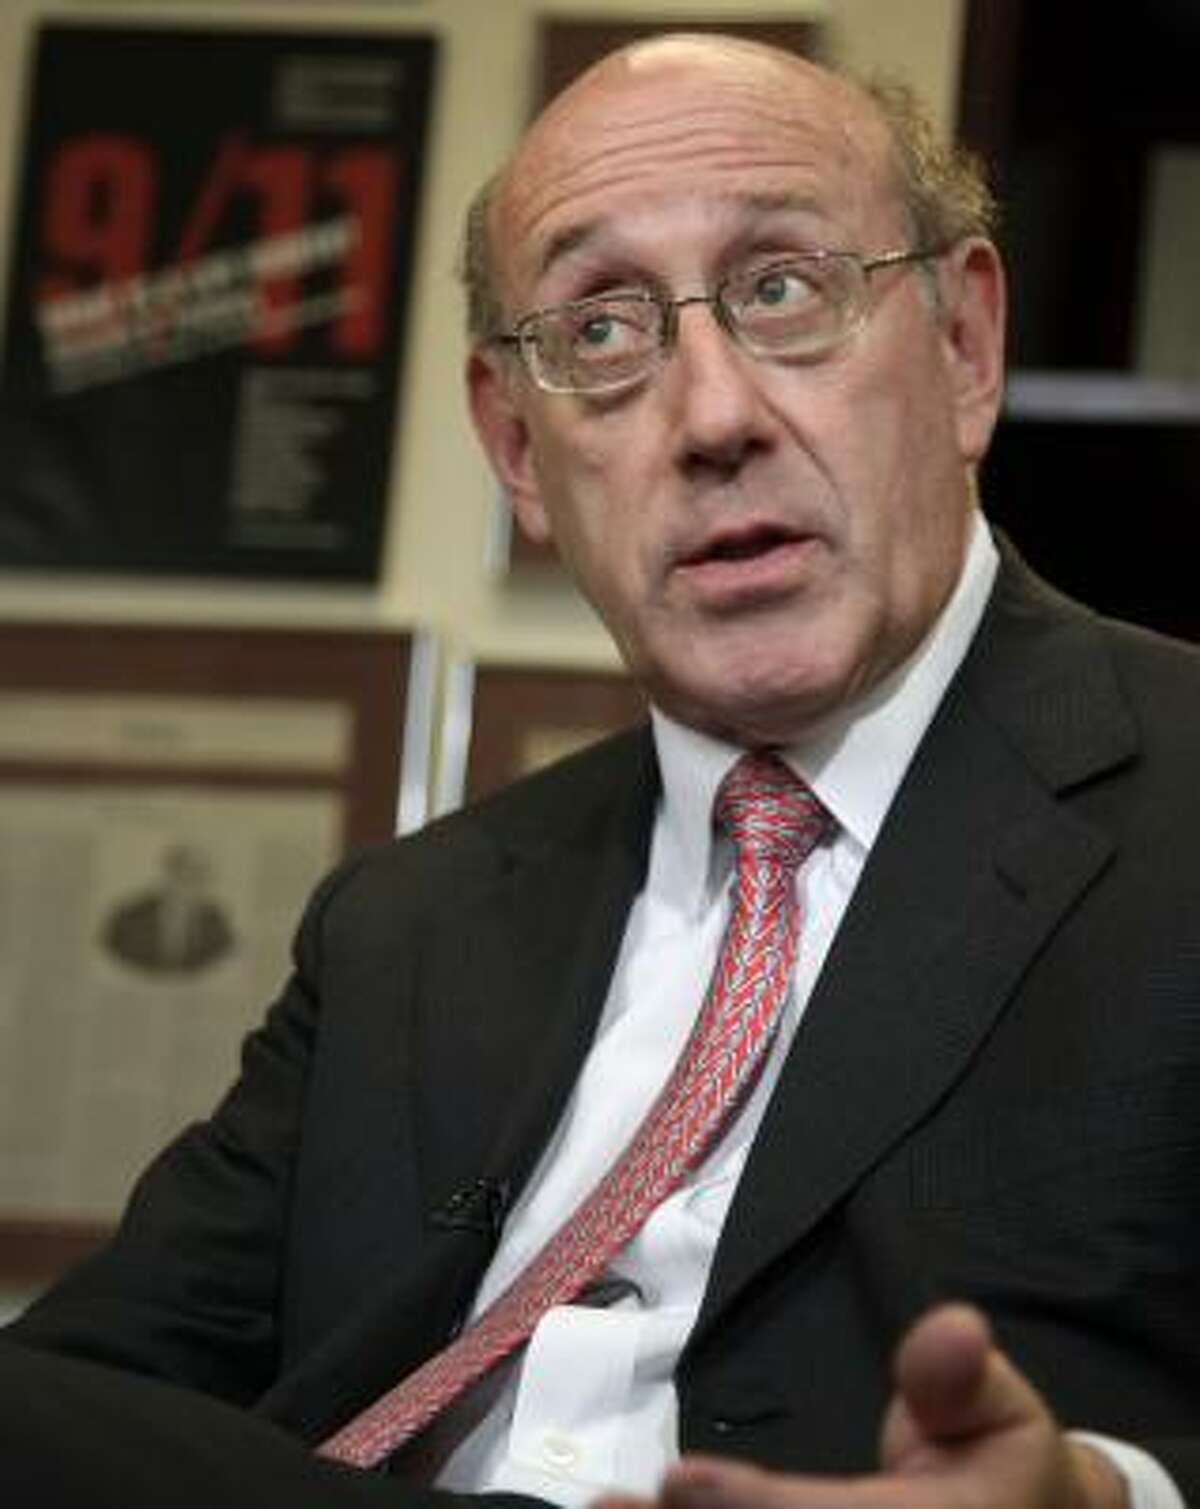 BP is paying Kenneth Feinberg's law firm, Feinberg Rozen, $850,000 a month to administer the $20 billion fund that is compensating victims of the Macondo well spill.